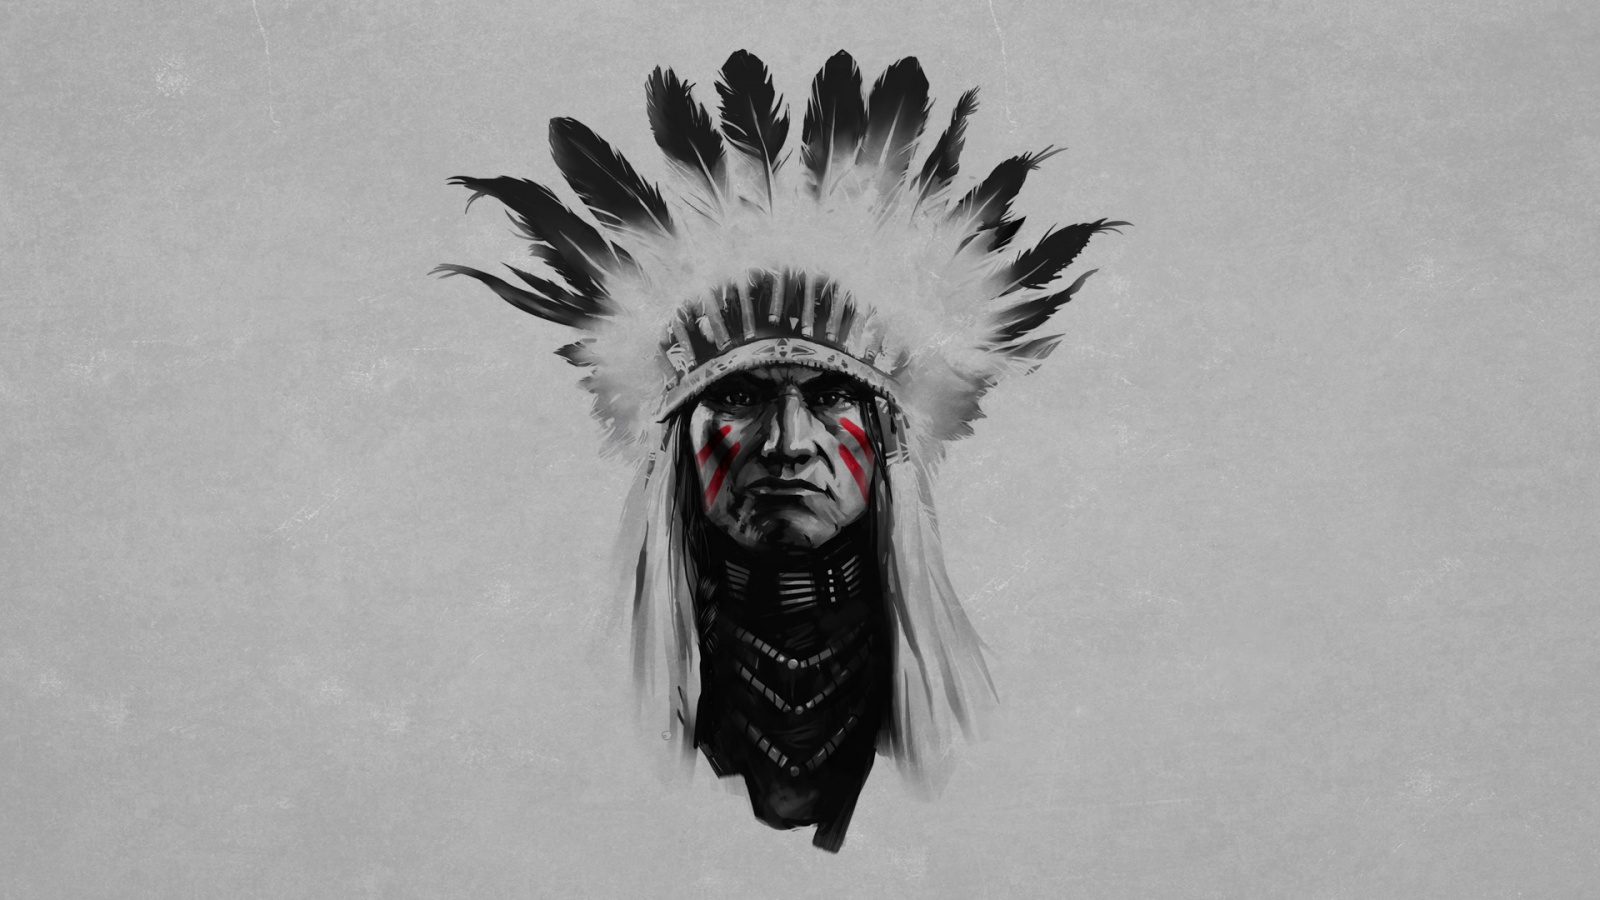 Description: The Wallpaper above is Indian chief artwork Wallpaper in Resolution 1600x900. Choose your Resolution and Download Indian chief artwork ...